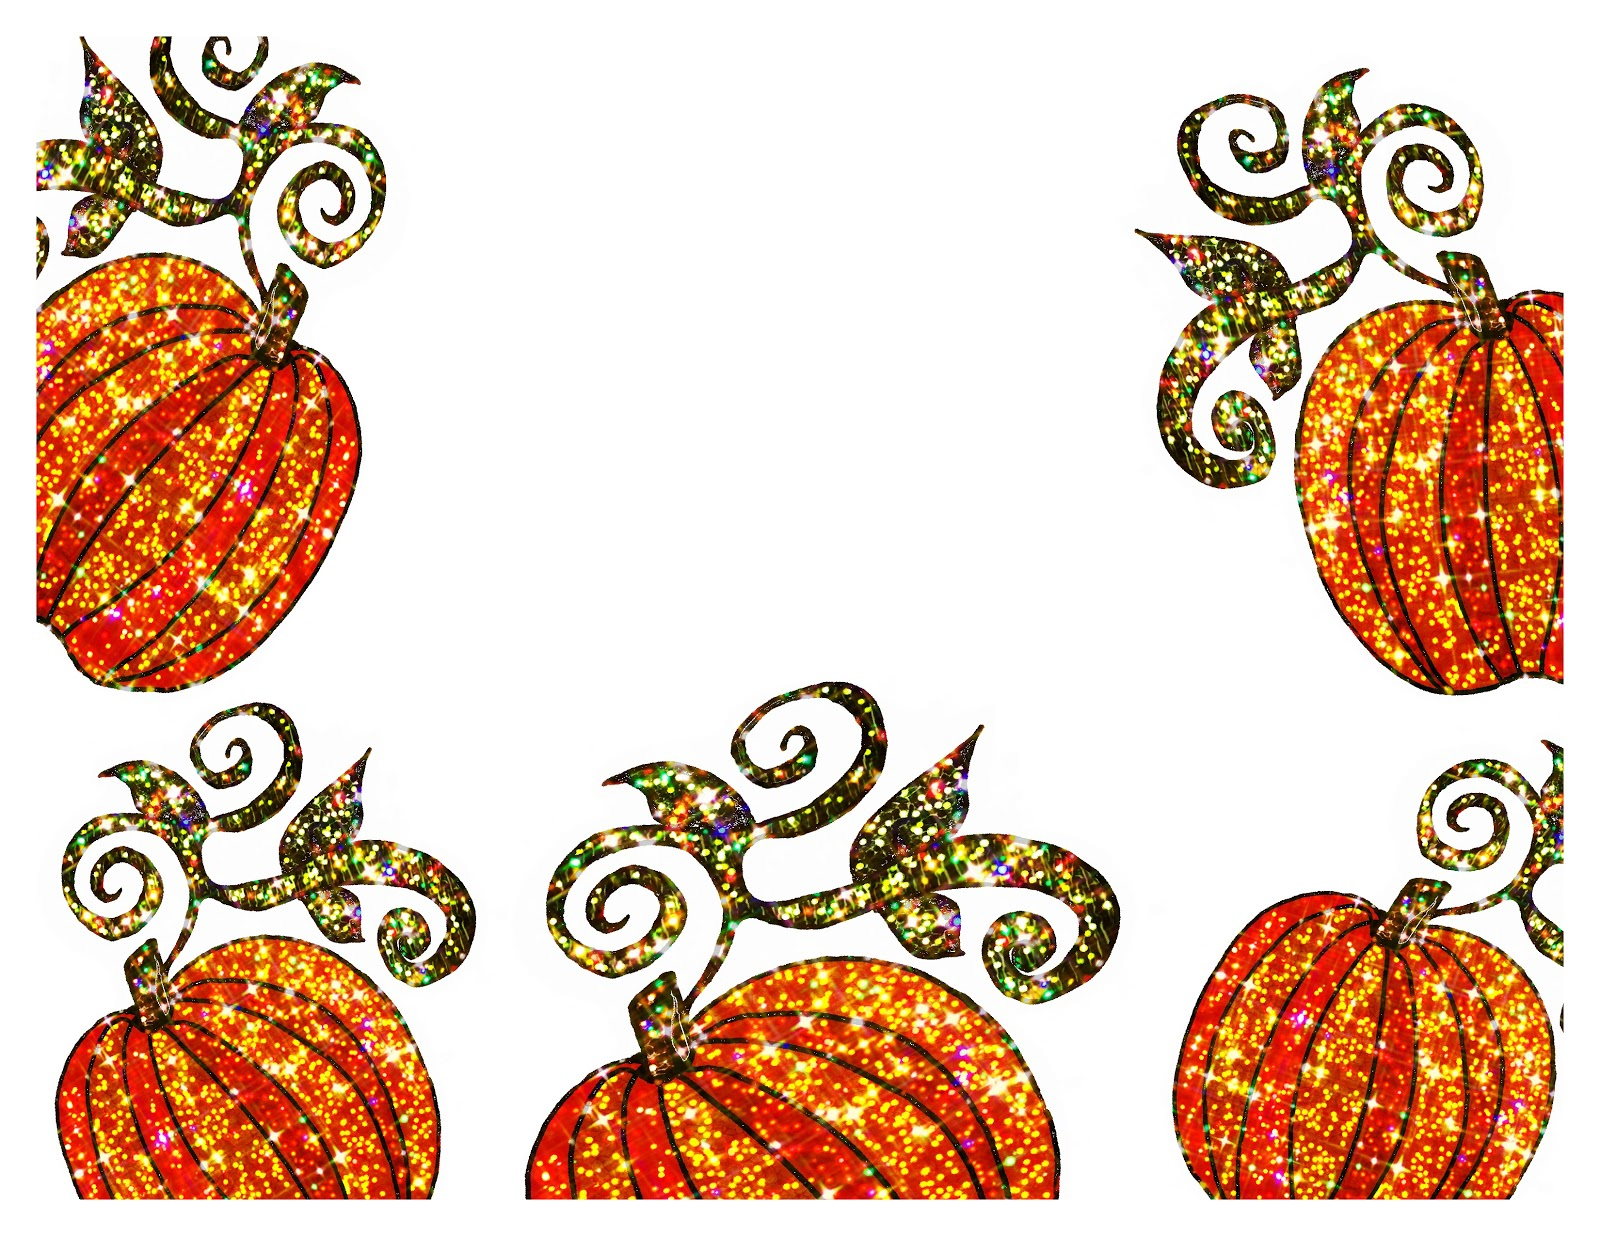 Fall Borders Clipart Free   Free download on ClipArtMag (1600 x 1236 Pixel)